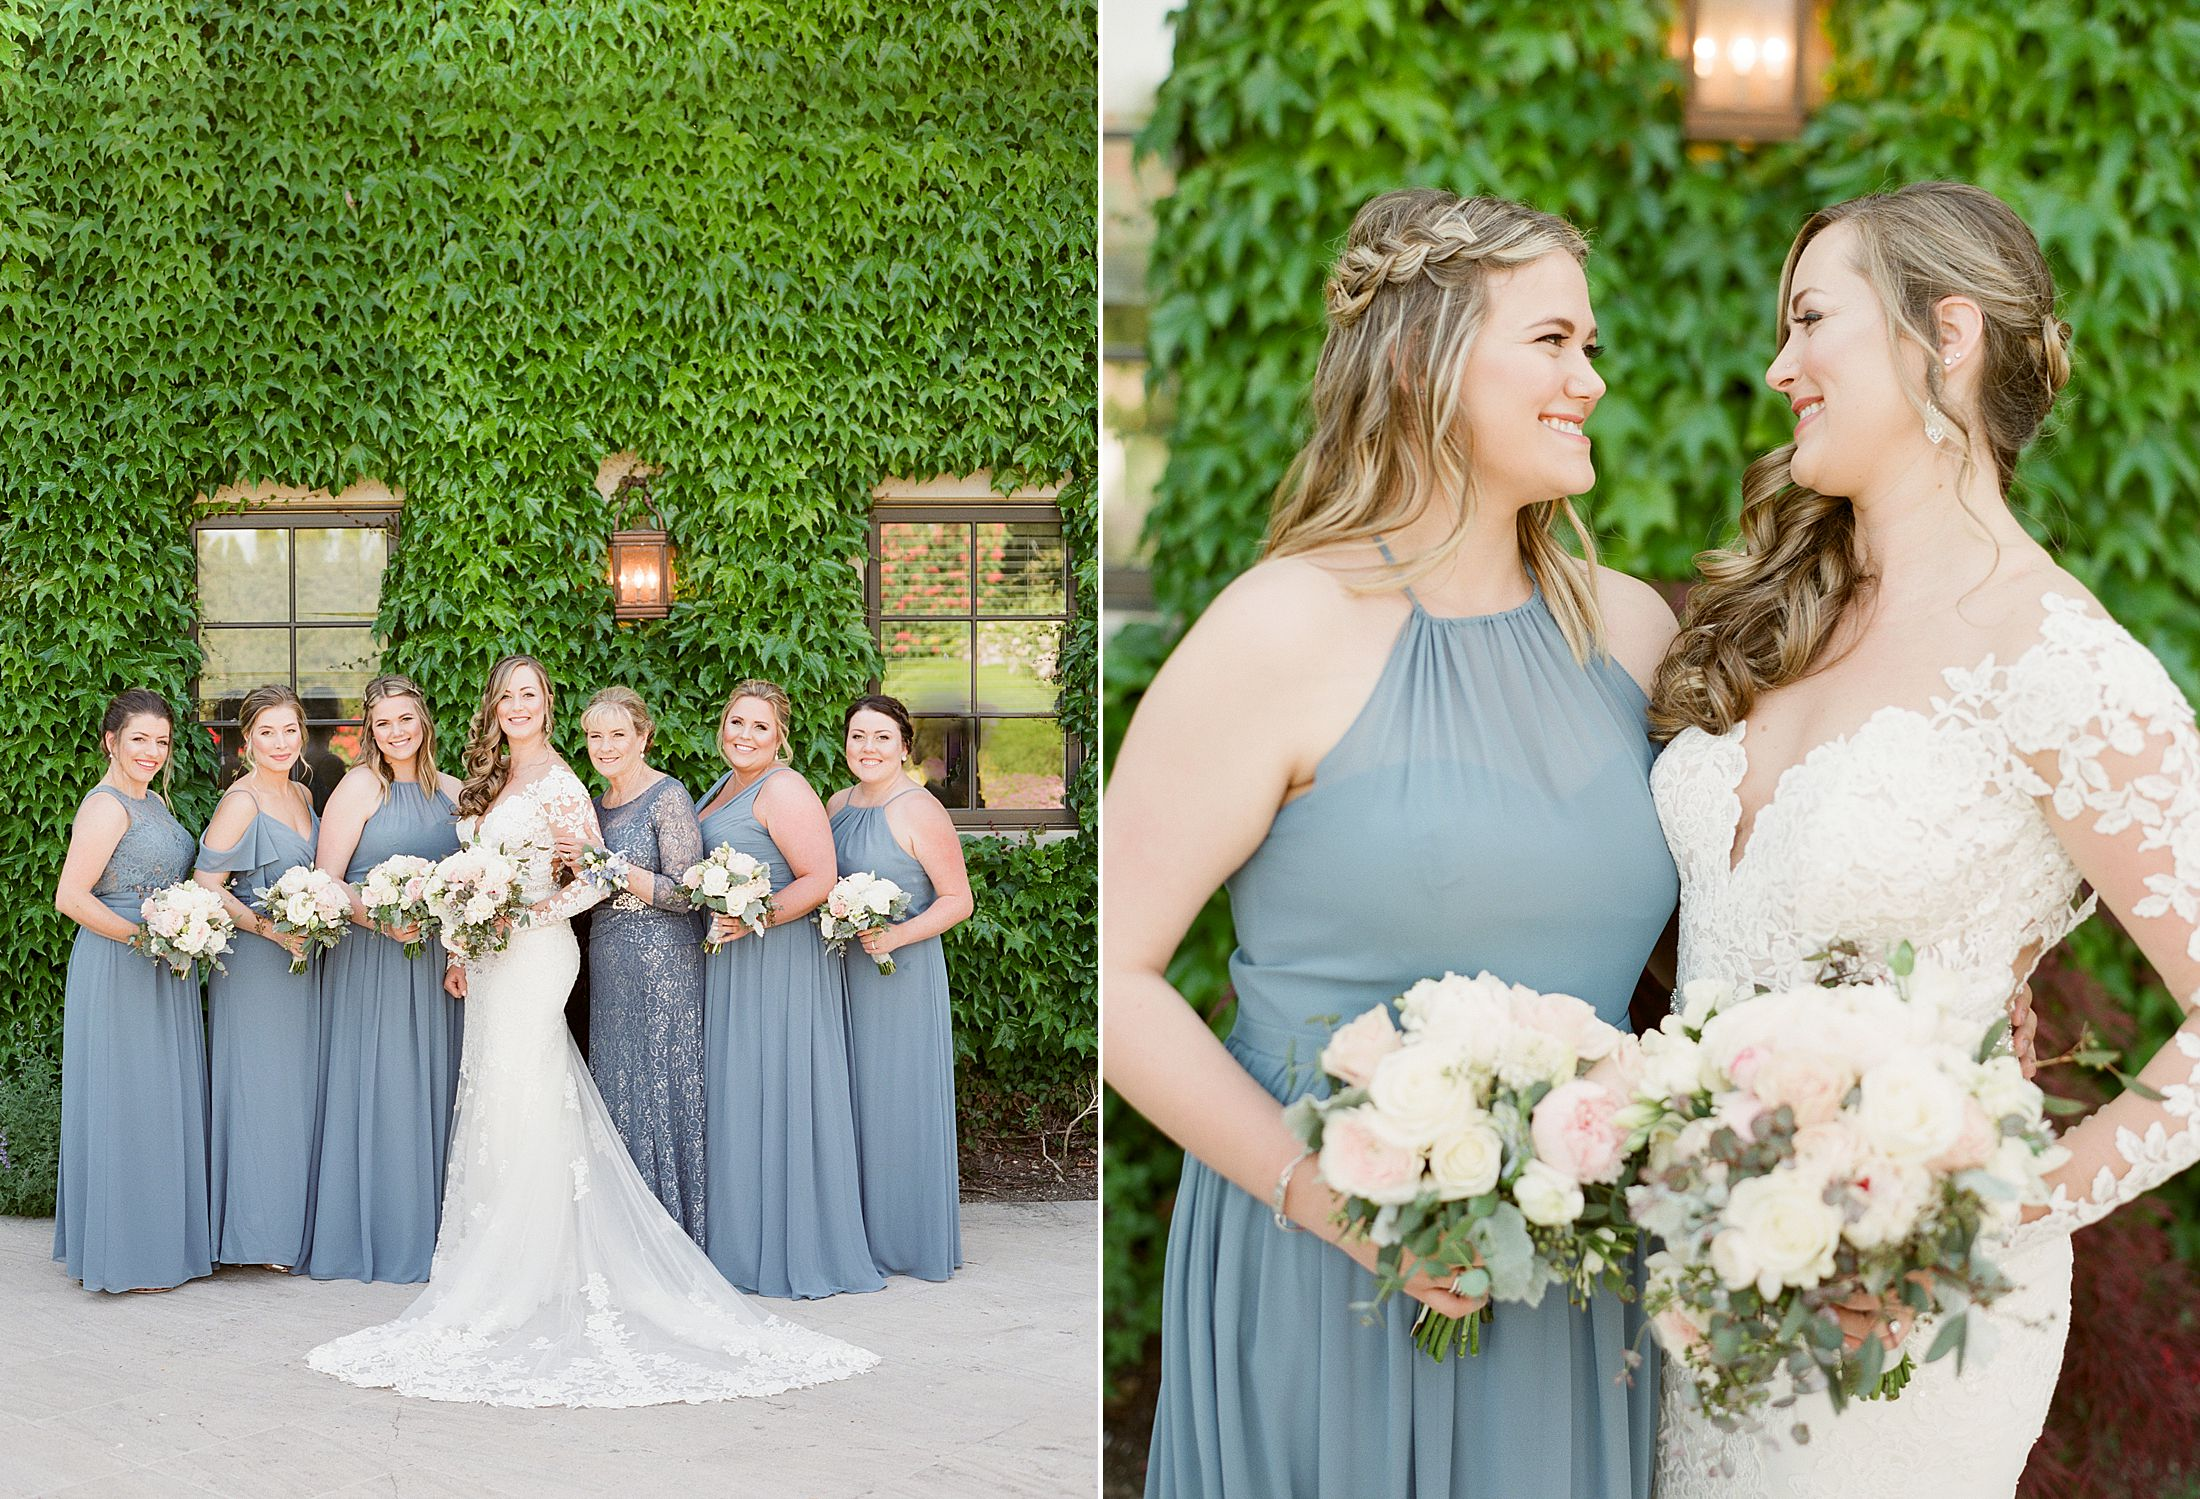 Clos LaChance Winery Wedding - Ashley Baumgartner - Kat & Kurt - Morgan Hill Wedding - Winery Wedding - Bay Area Photographer - Sacramento Wedding Photographer_0023.jpg